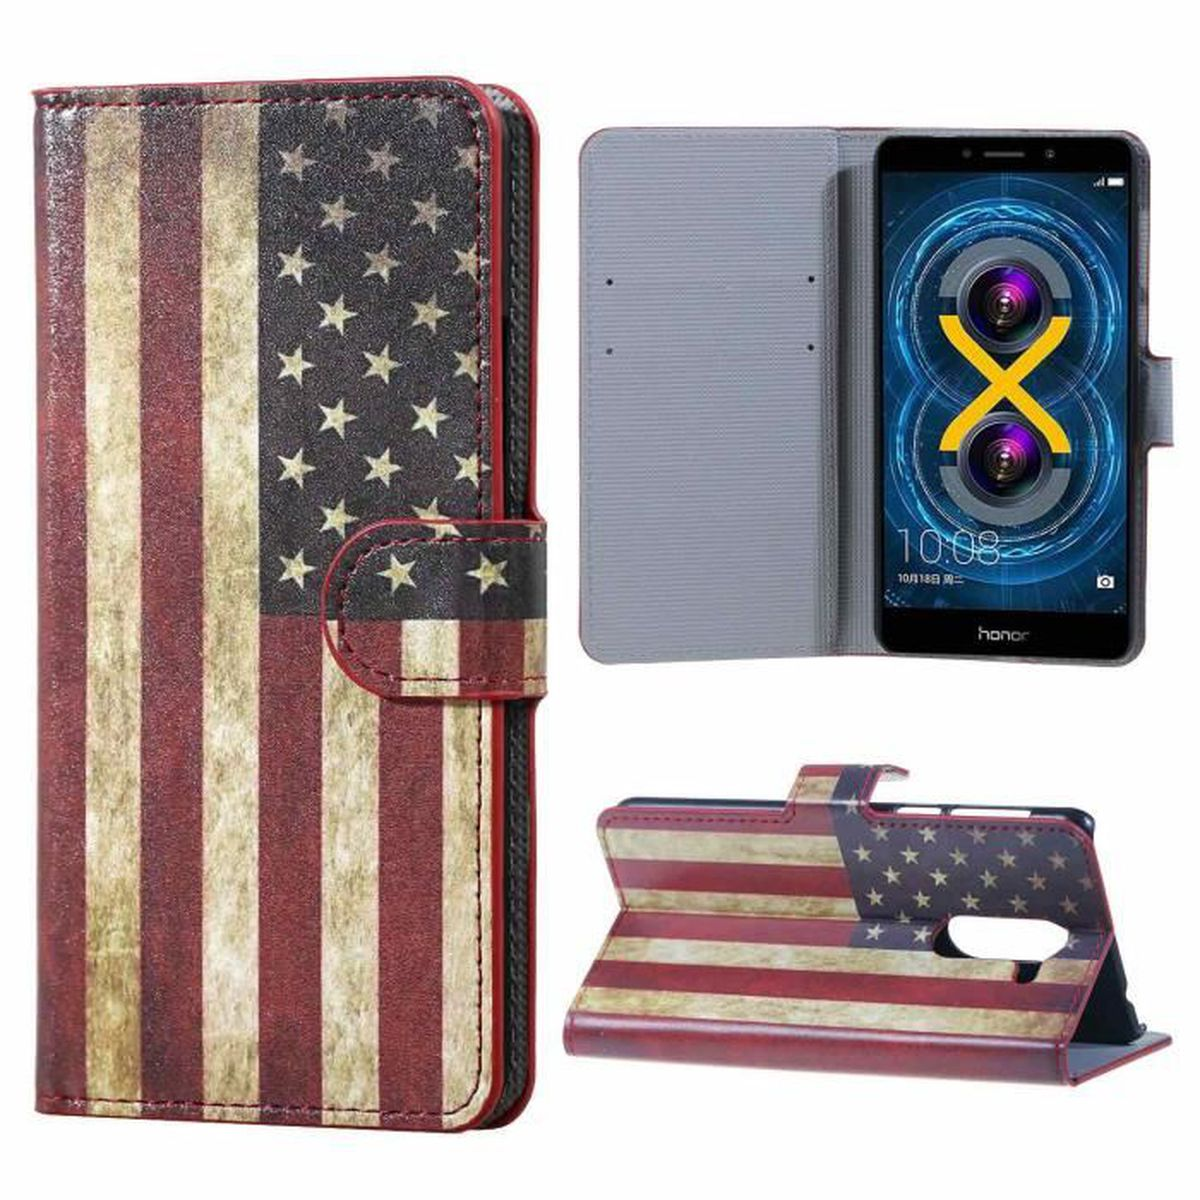 Housse etui folio portefeuille huawei honor 6x housse pu for Housse honor 6x